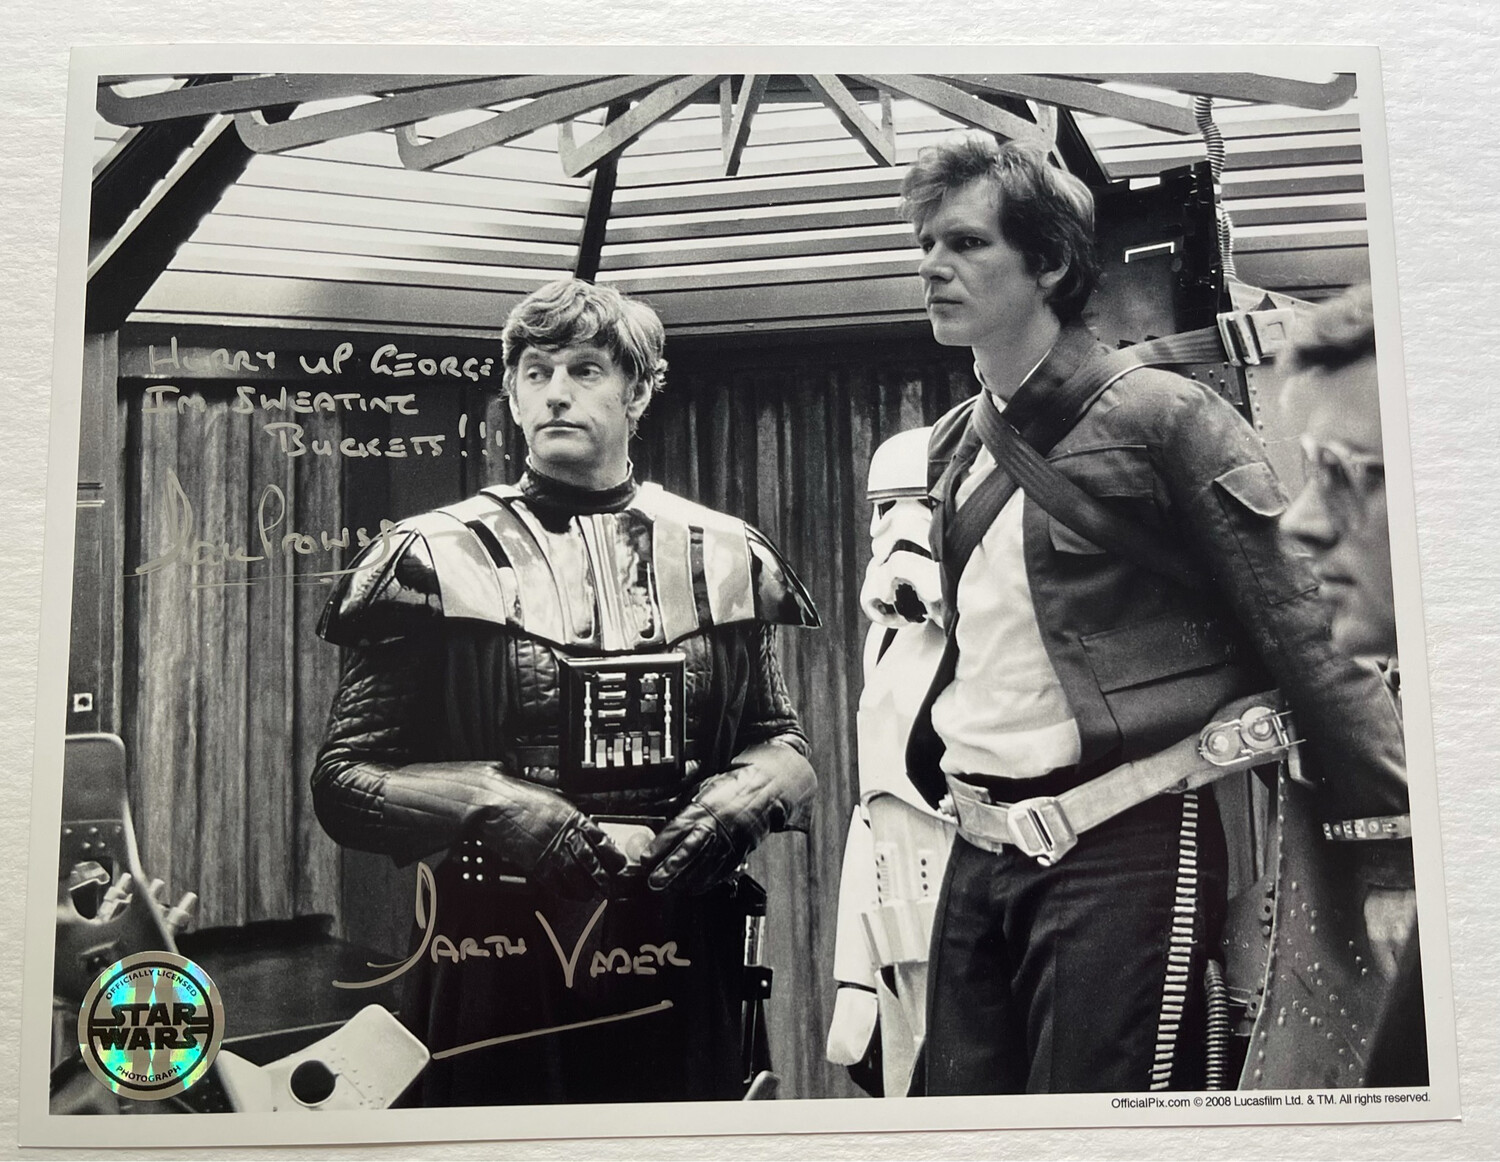 8X10 DARTH VADER PHOTO SIGNED BY DAVE PROWSE - ONE OF A KIND!